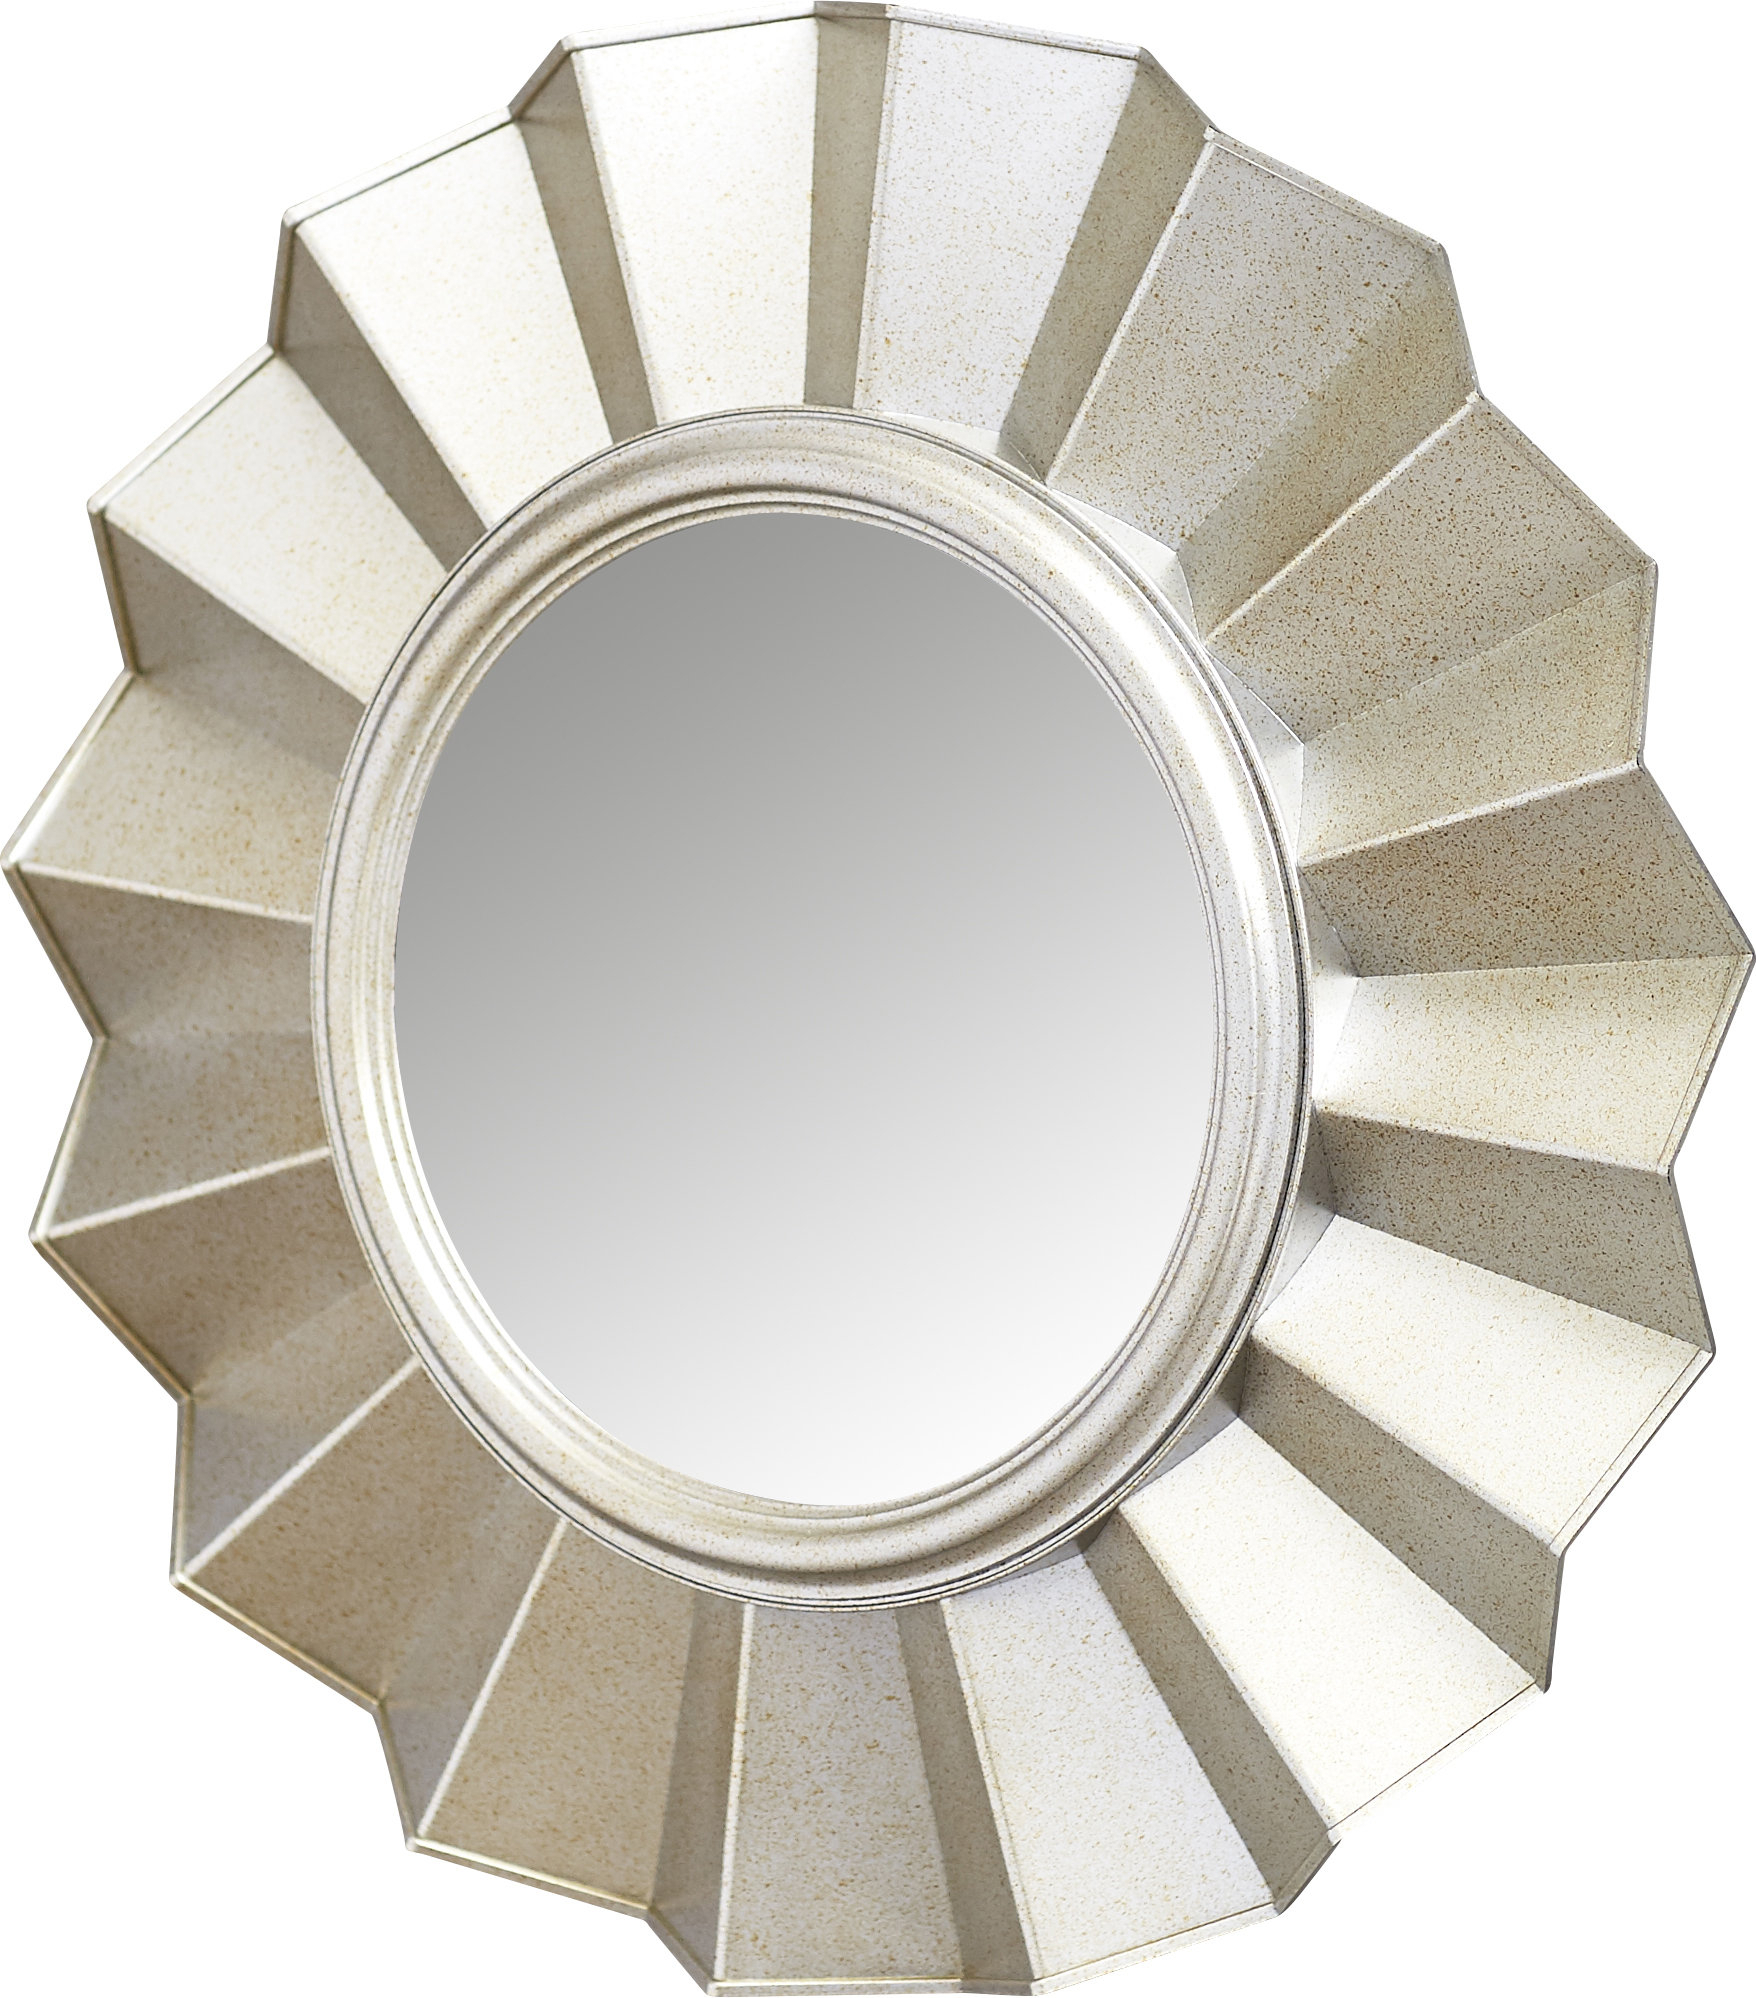 Vertical Round Wall Mirror With Regard To Tata Openwork Round Wall Mirrors (Image 16 of 20)